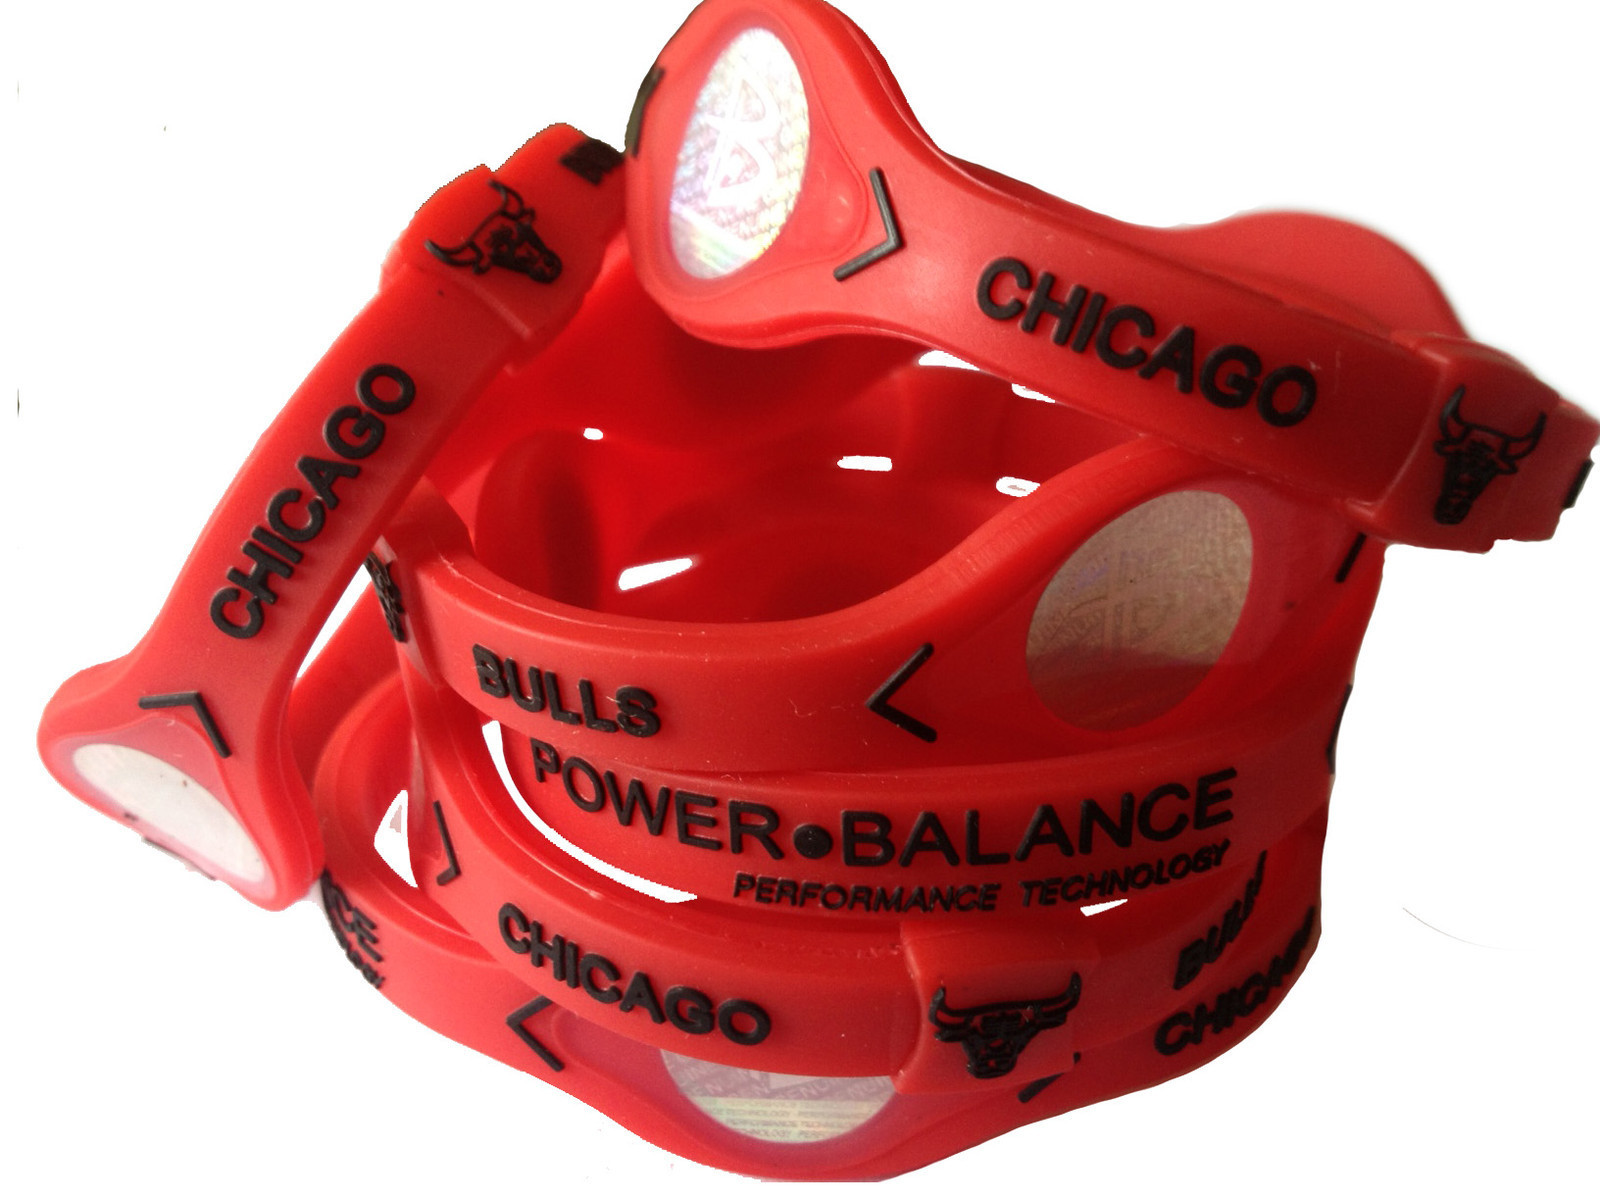 NBA Power Energy bracelets image 3